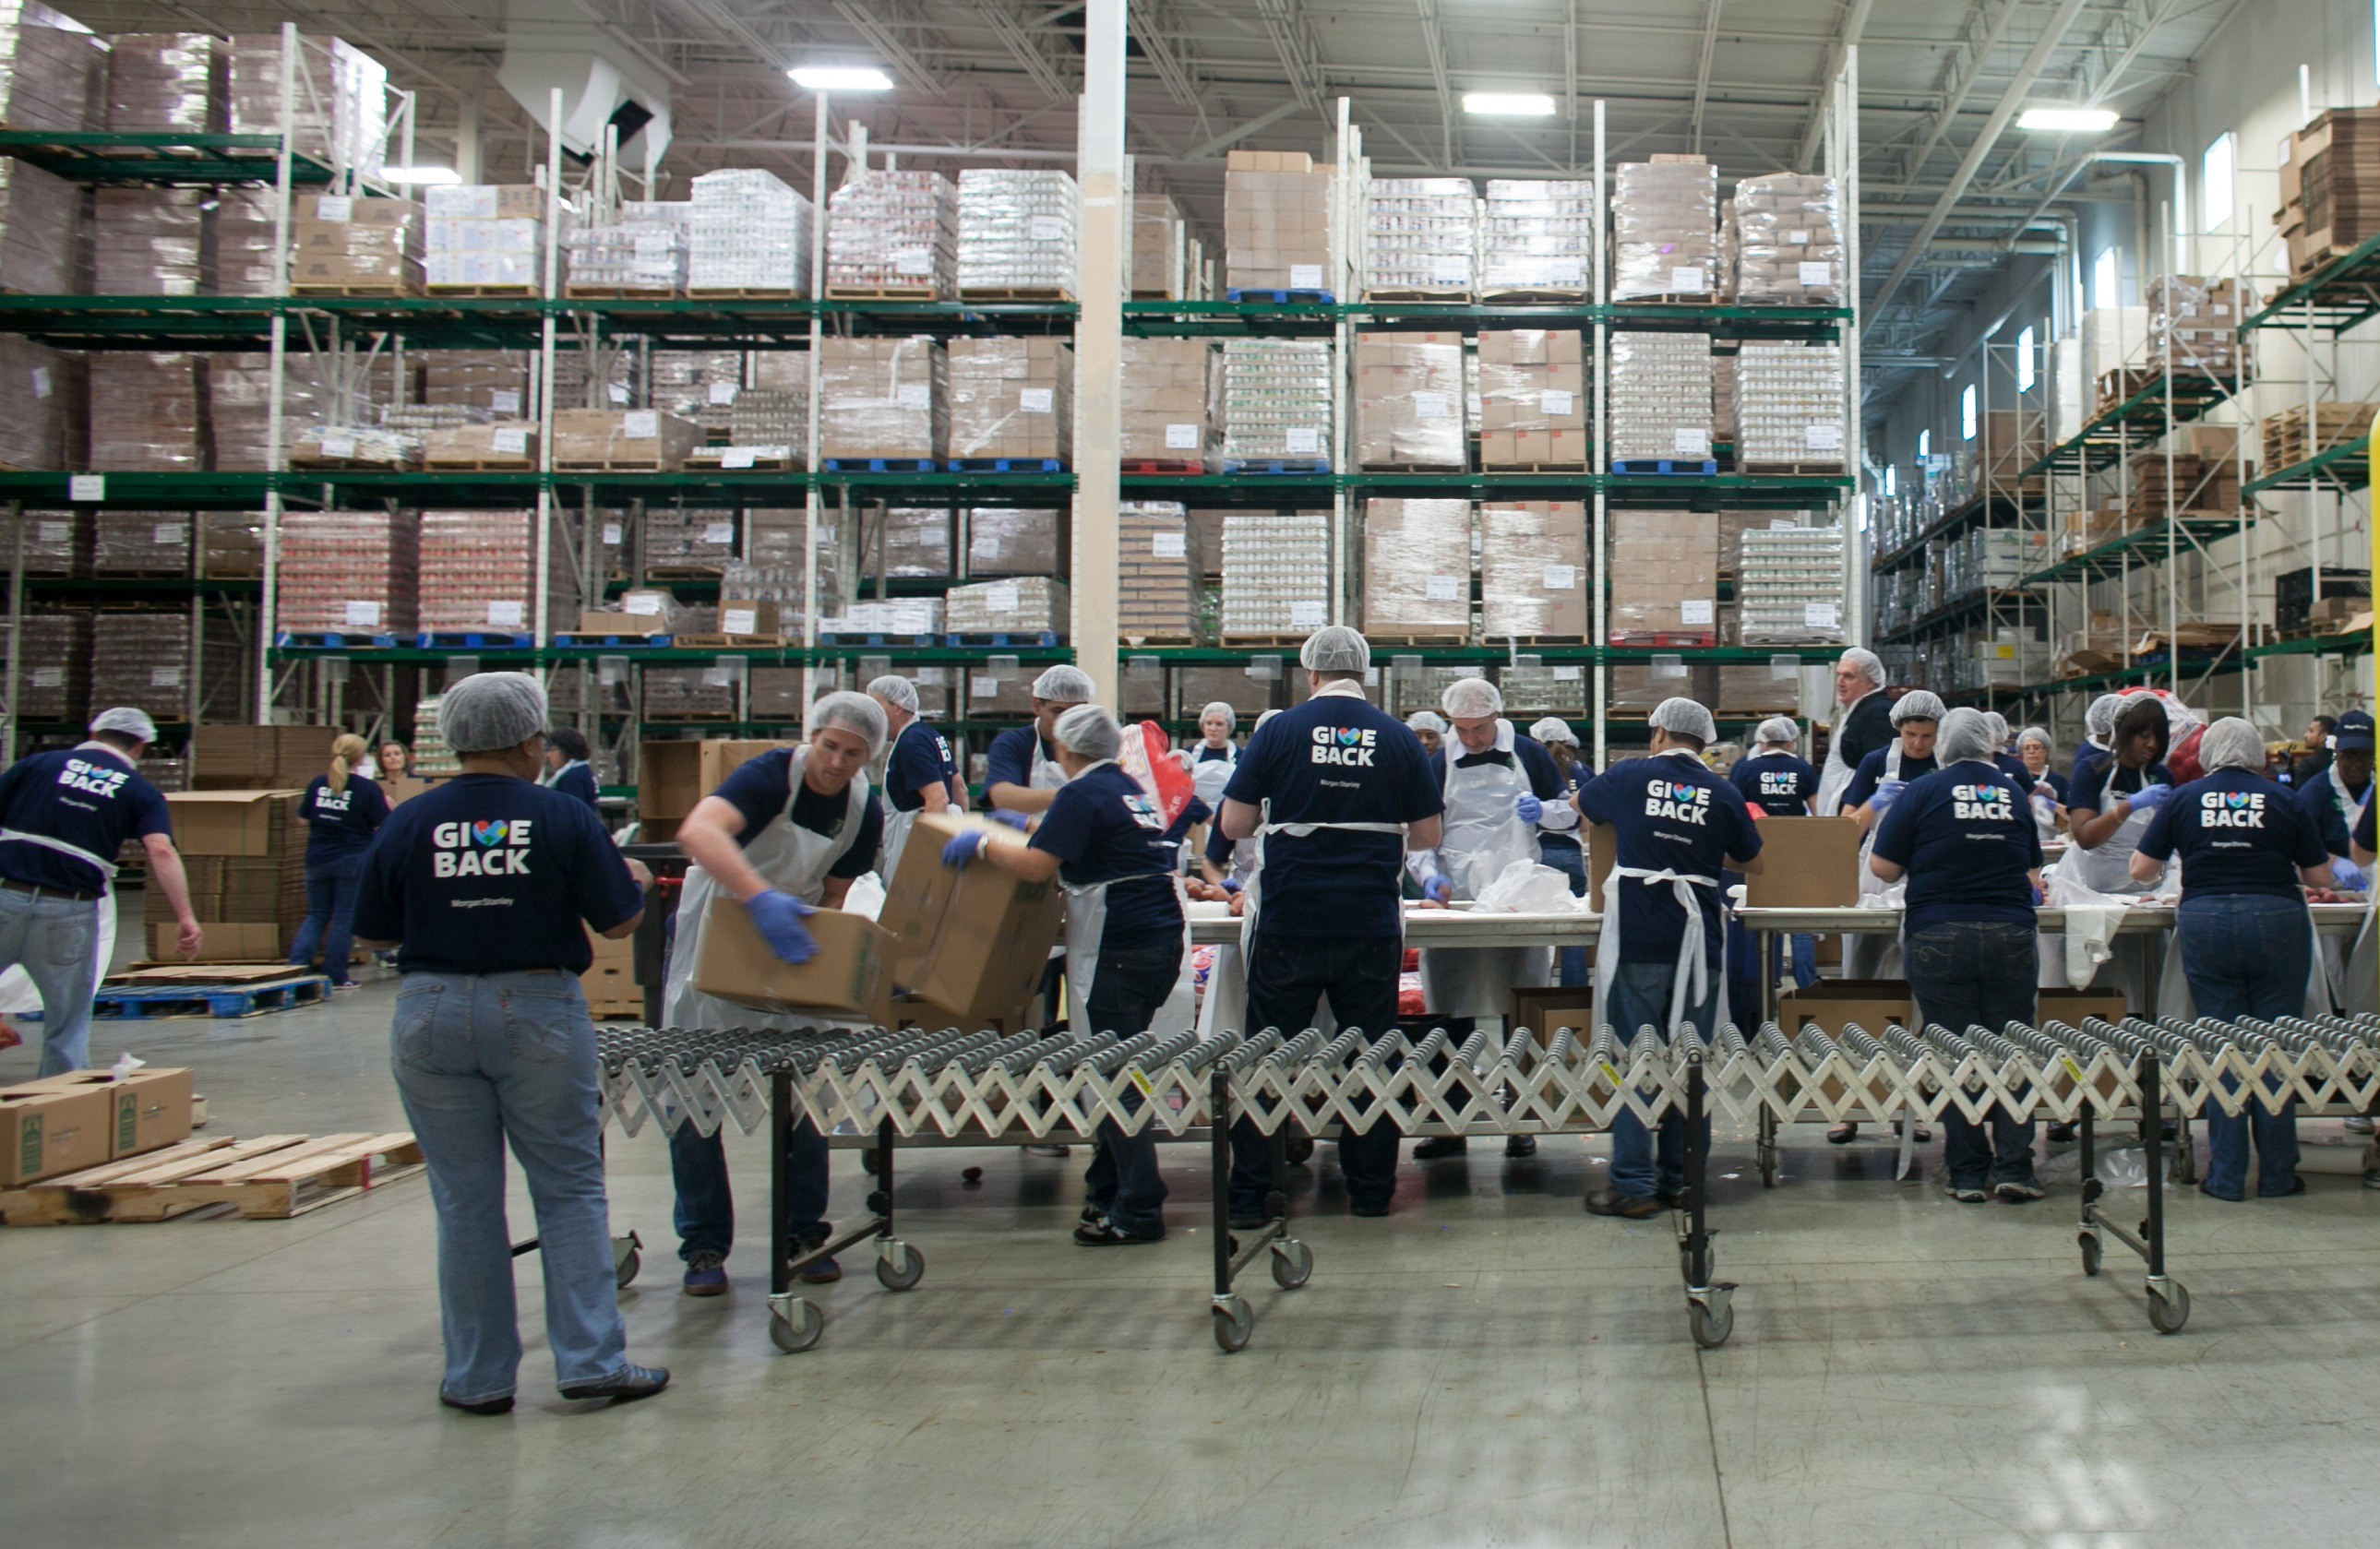 Charitable Giving: 7 Hated Companies That Actually Give Back